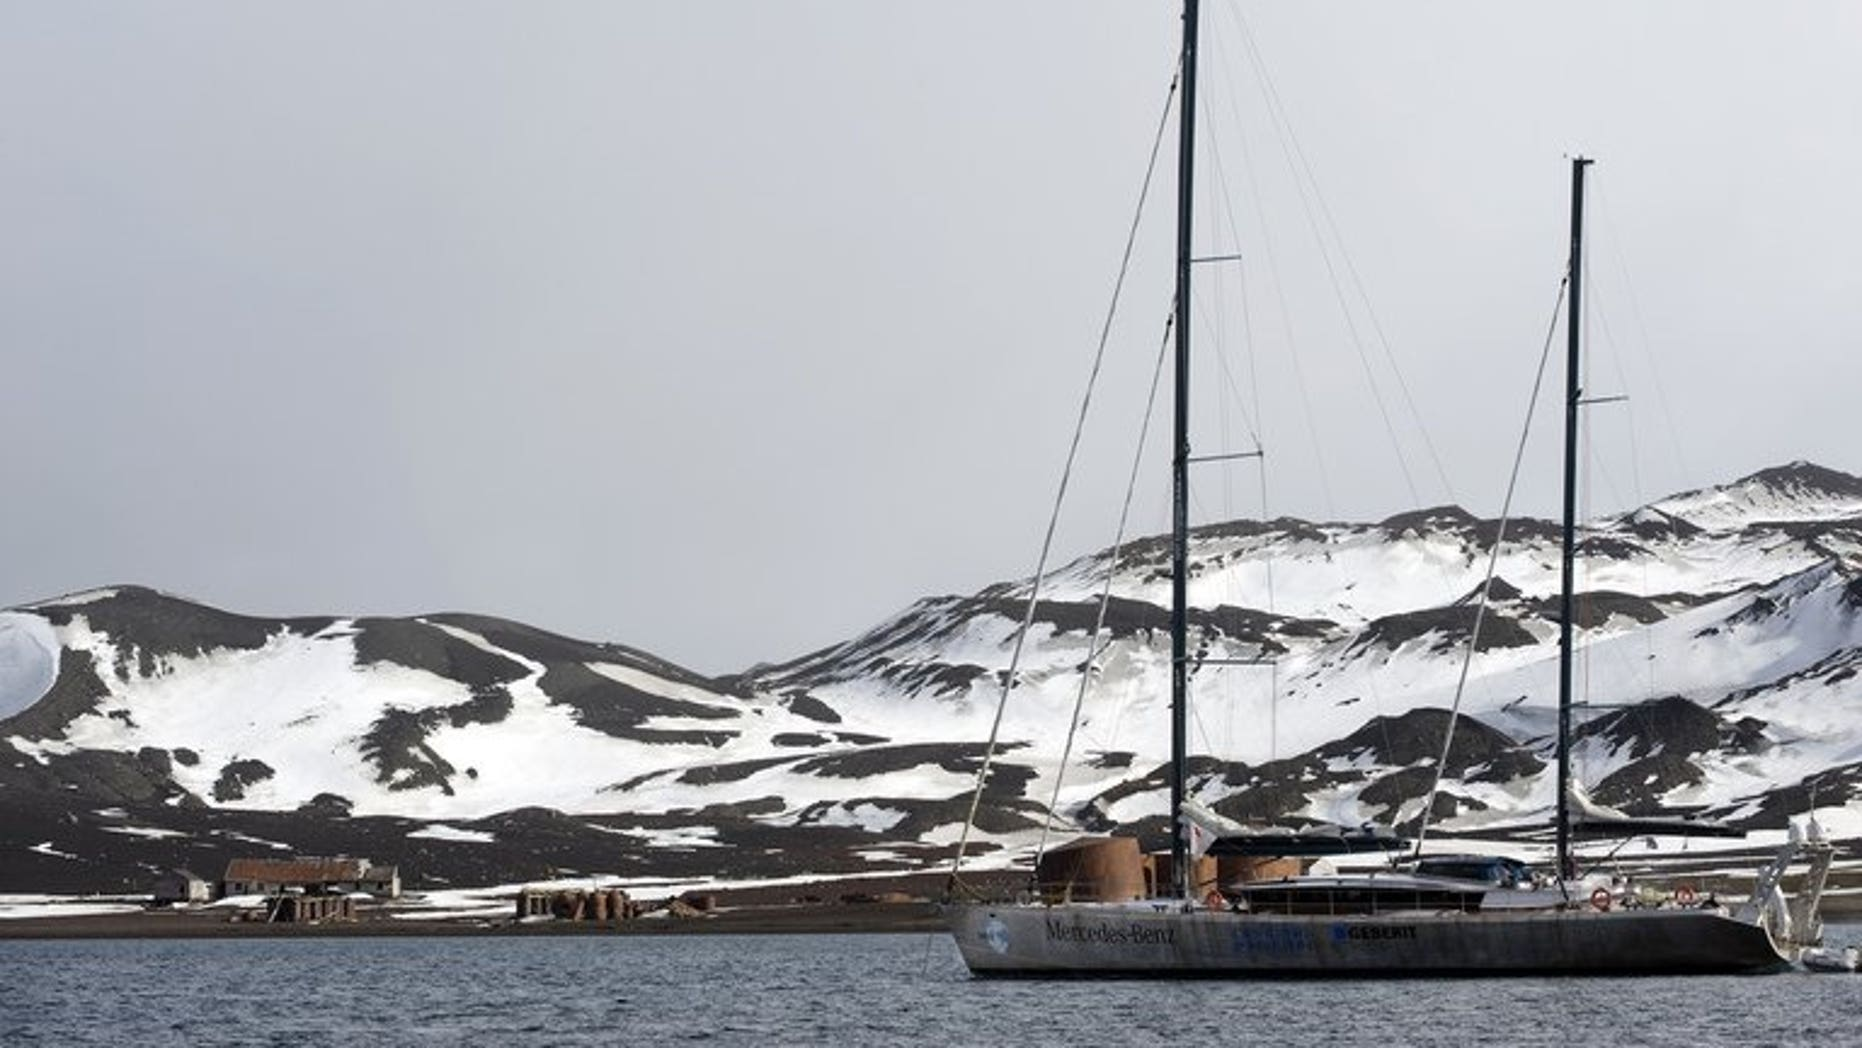 A sailing boat is anchored in the bay of Deception Island, Antarctica, on October 27, 2008. A powerful 7.3-magnitude earthquake struck off the coast of Antarctica on Monday, generating large waves but causing no injuries, seismic experts at Argentina's Orcadas base in Antarctica said.